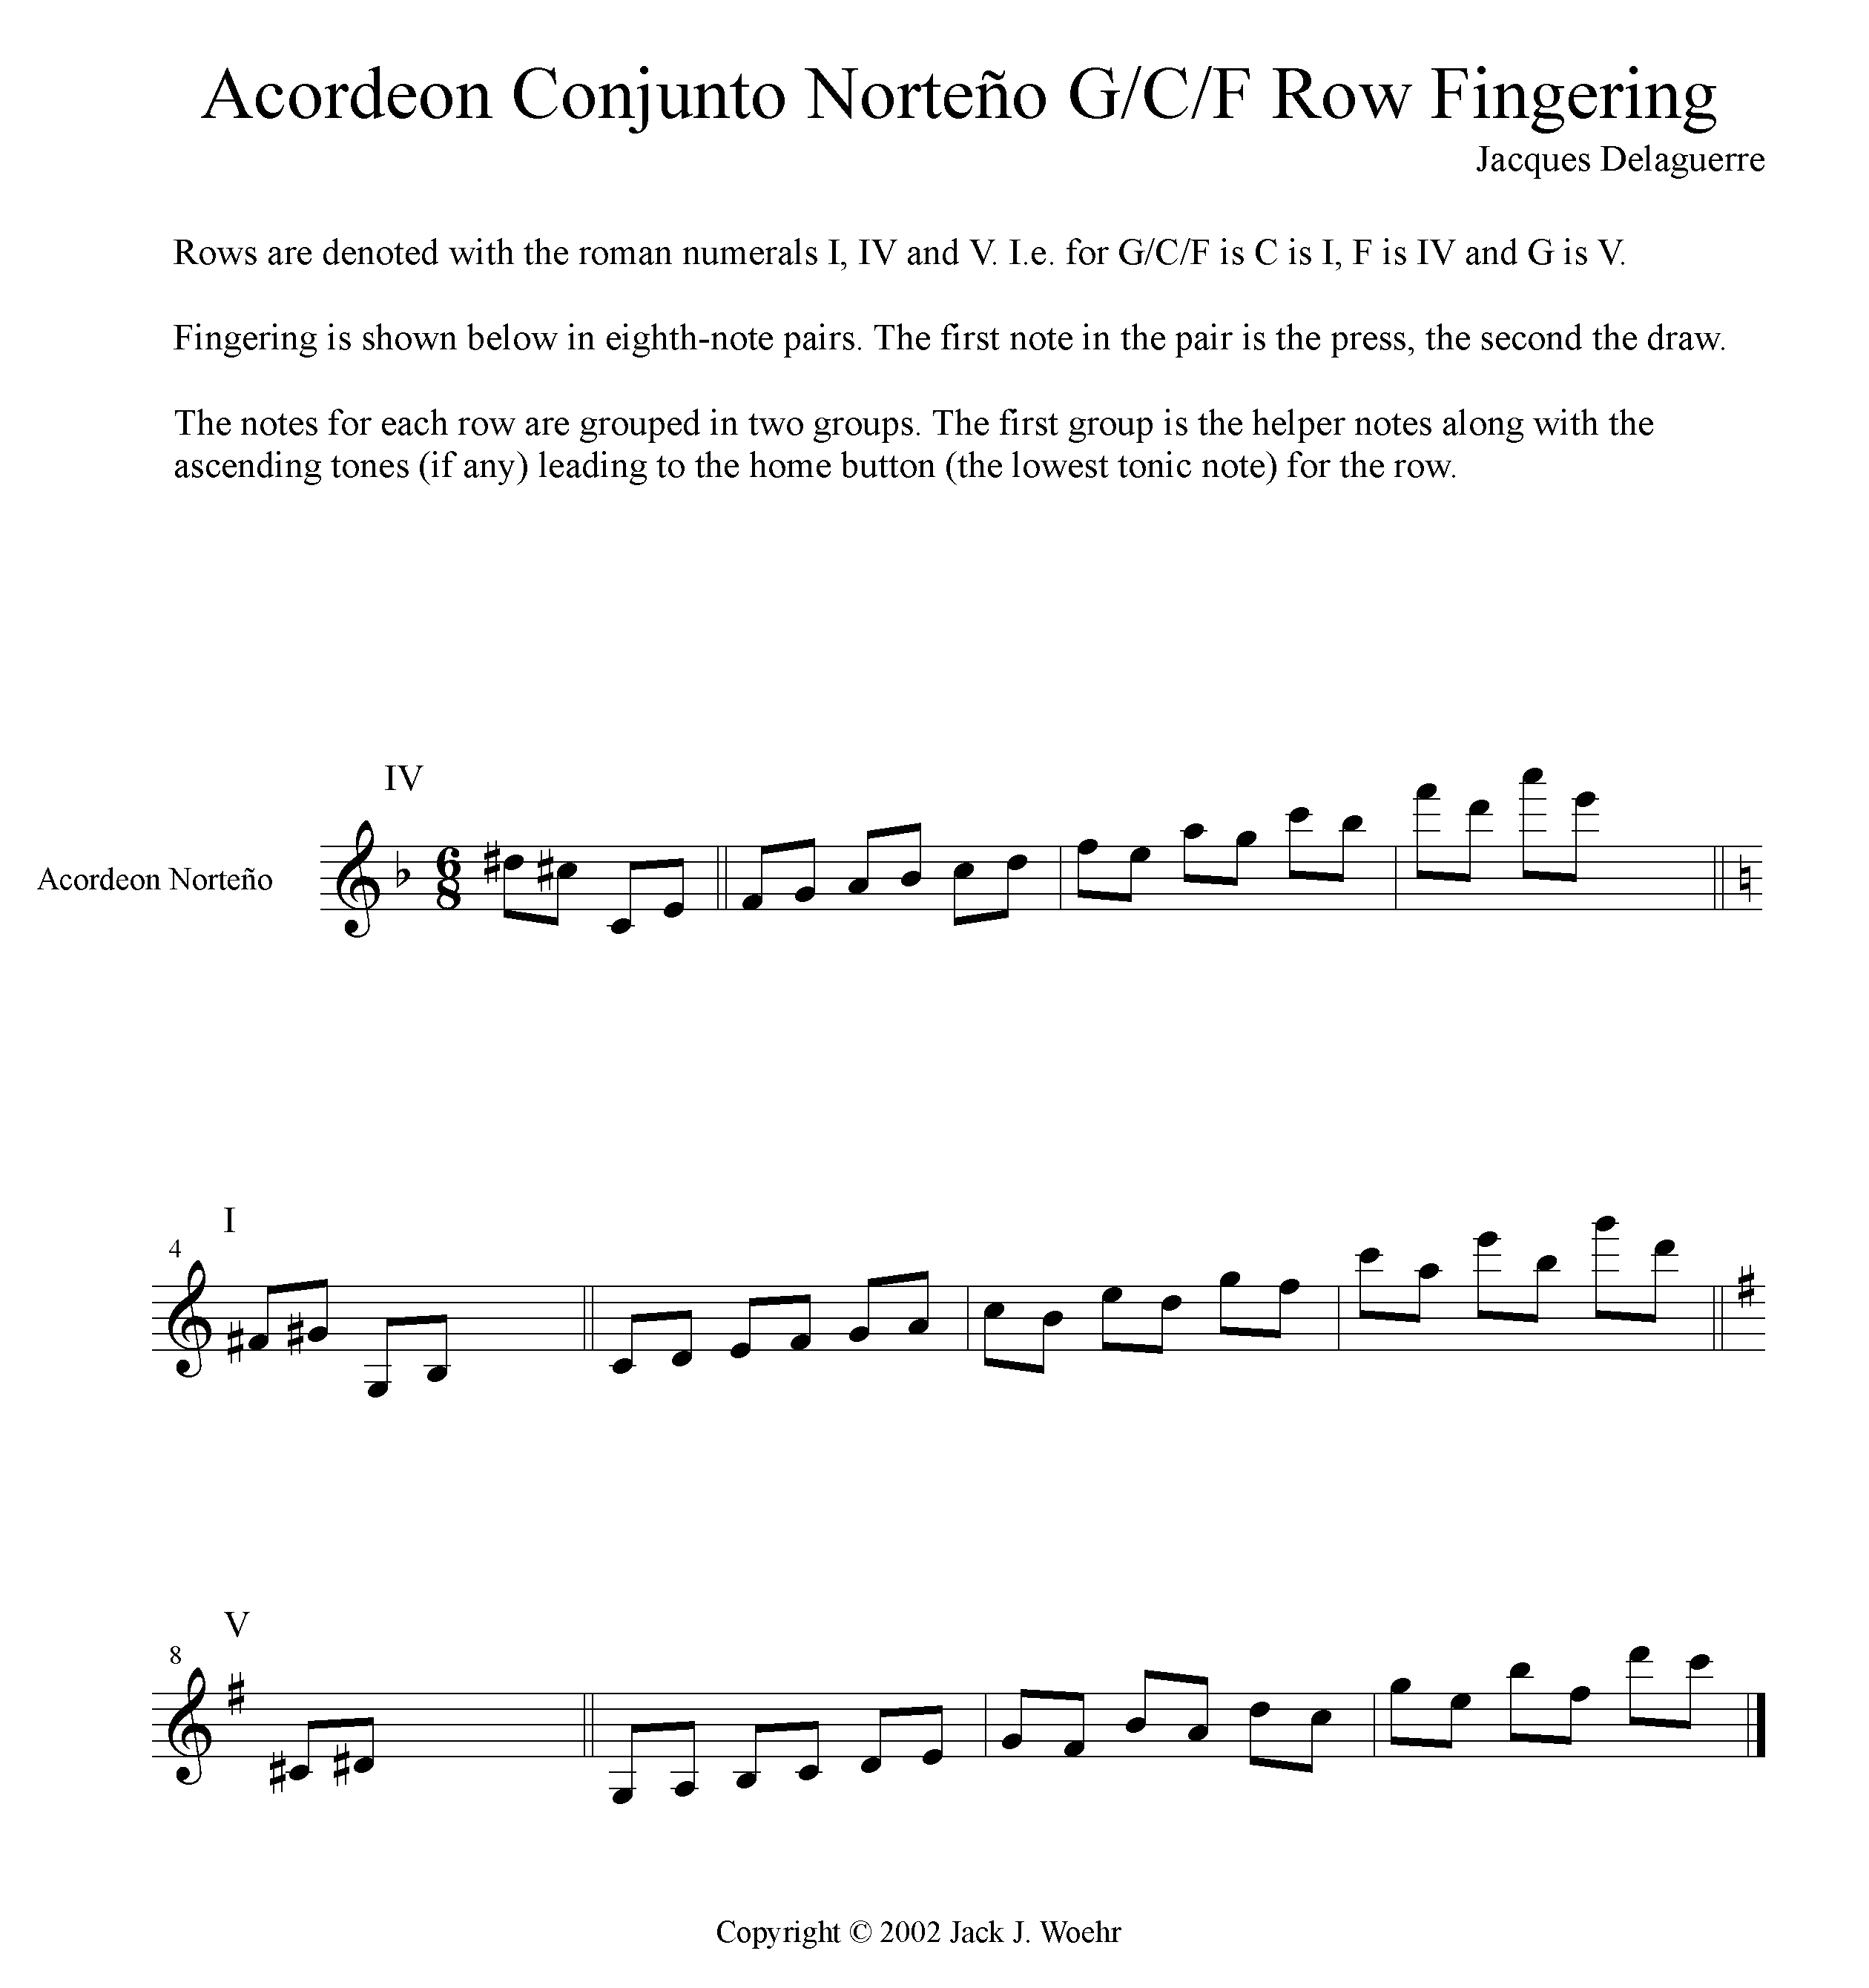 F symbol in music gallery symbol and sign ideas gcf layout in music notation accordion tutorials resources gcf layout in music notation buycottarizona biocorpaavc